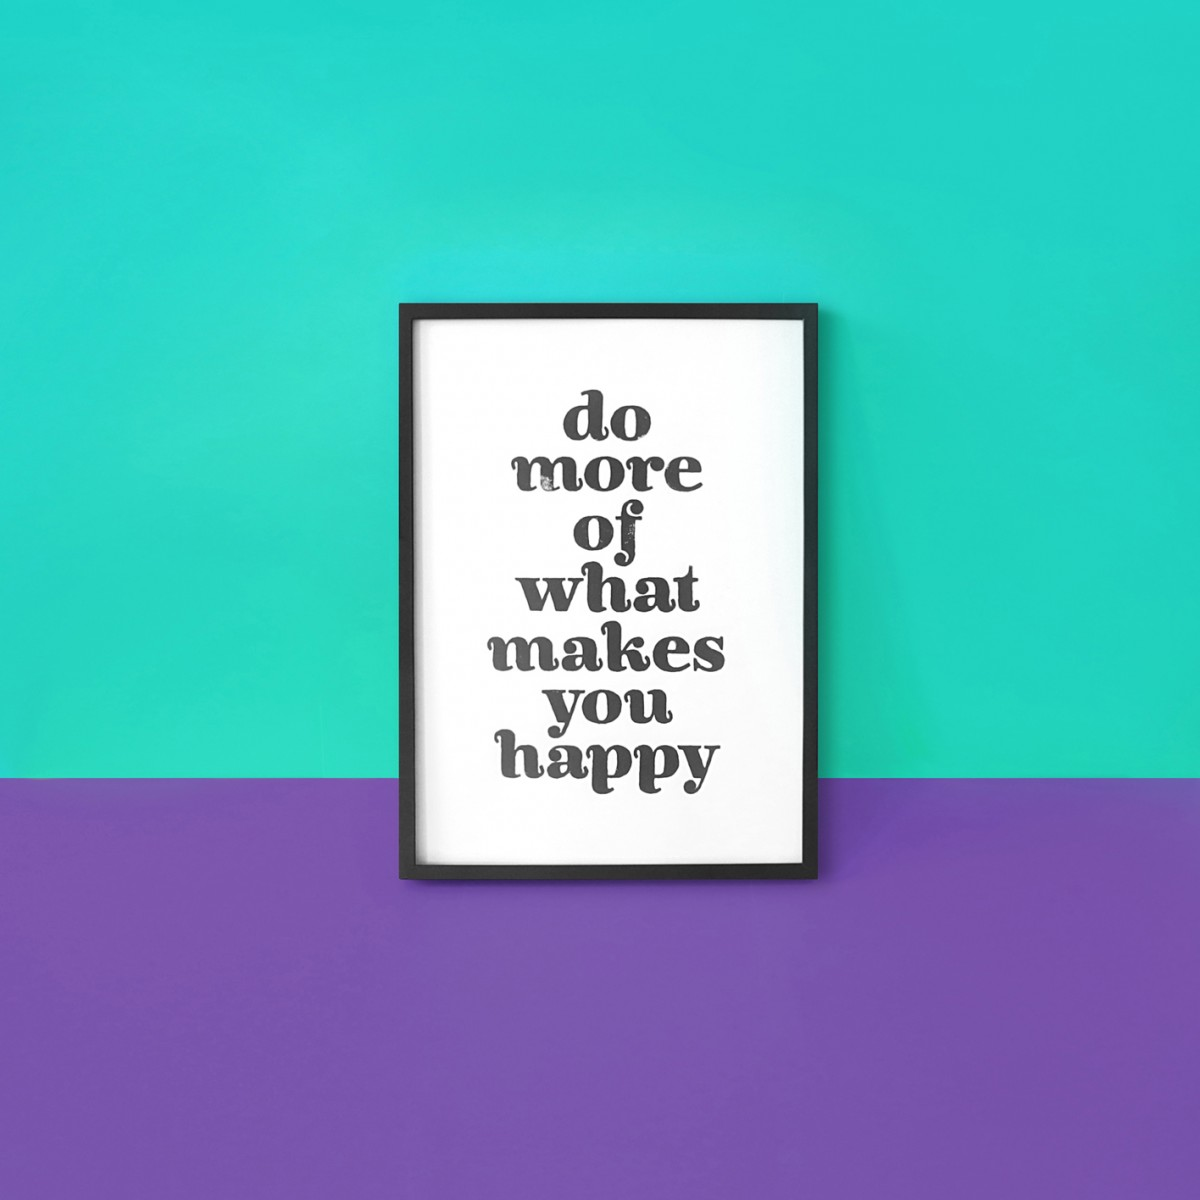 The True Type Linoldruck »do more of what makes you happy«, gerahmt (DIN A4), Poster, Print, Typografie, Design